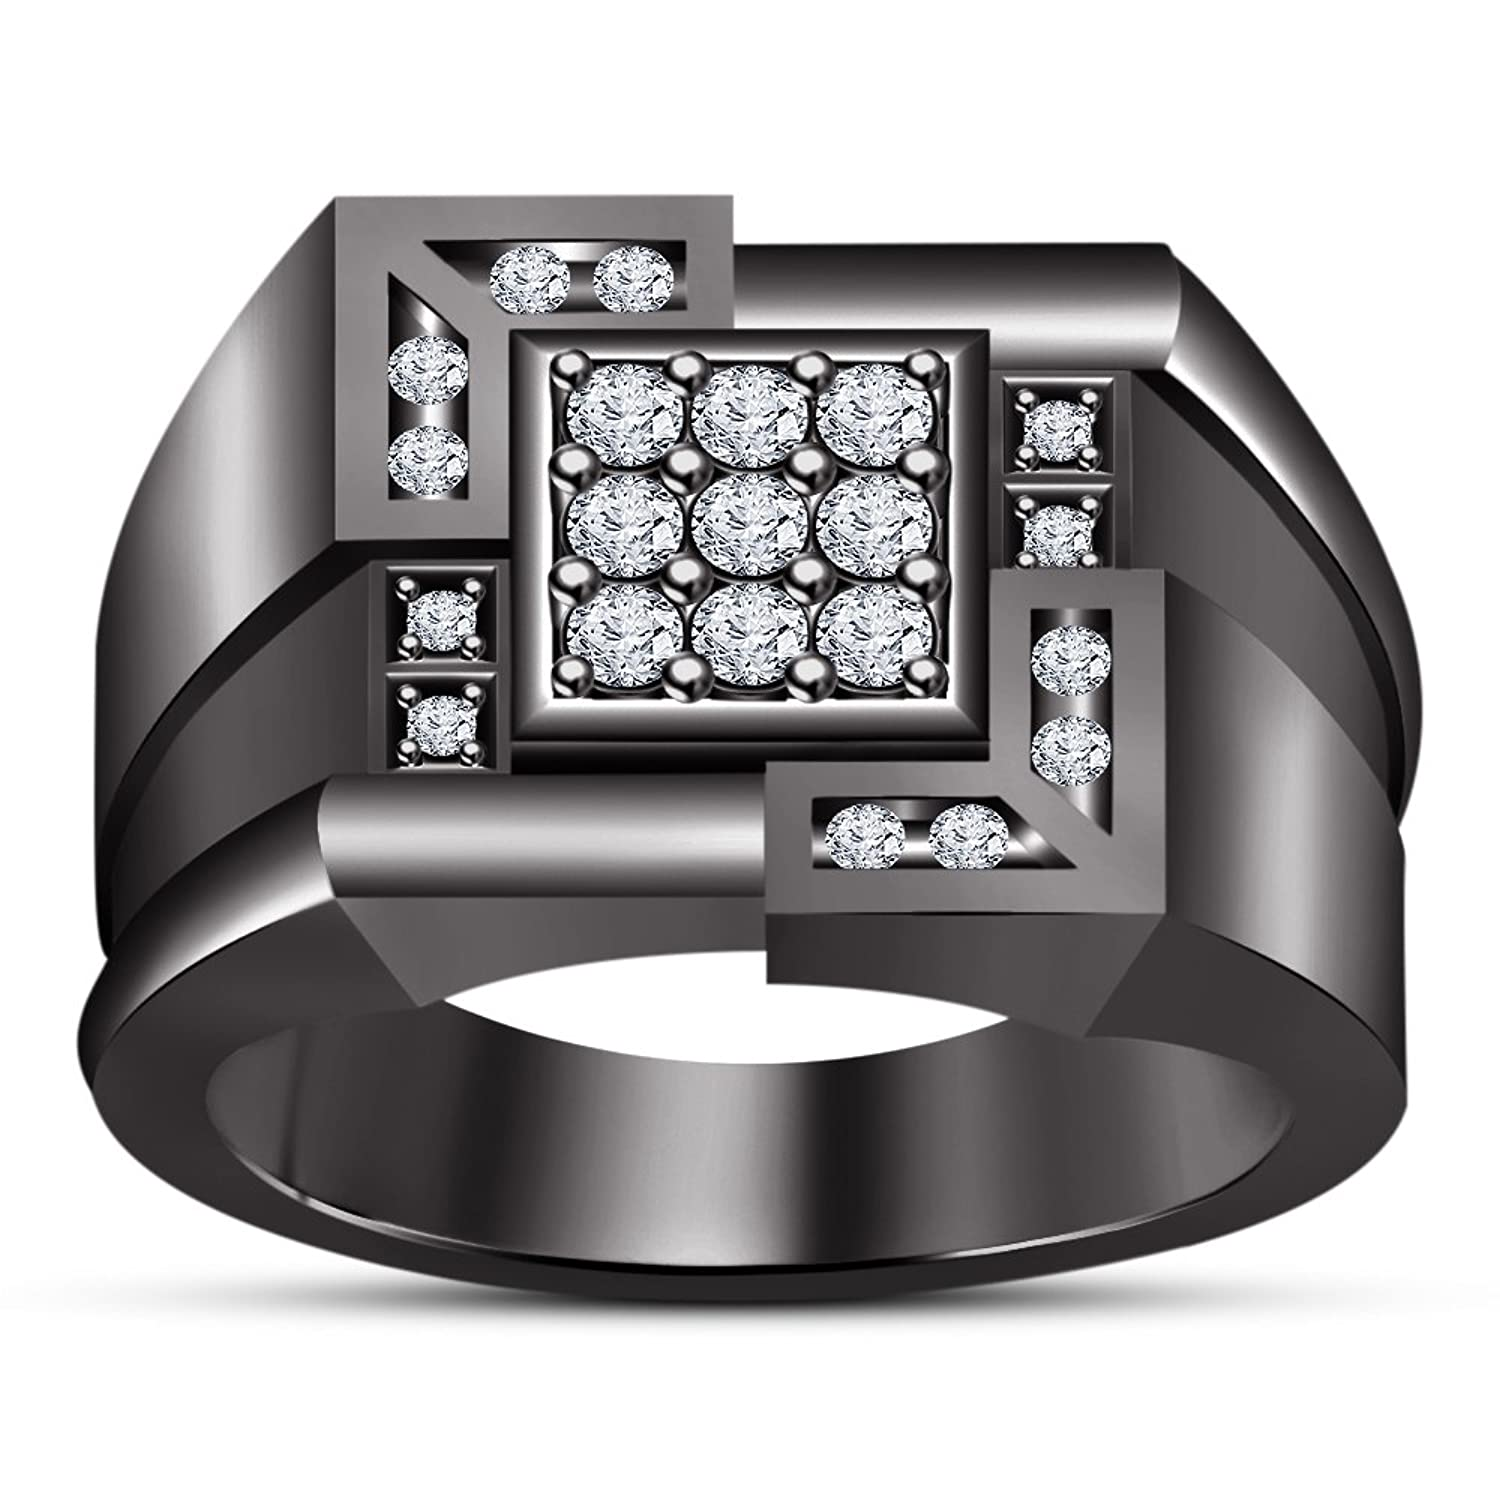 TVS-JEWELS 925 Sterling Silver Black Rhodium Plated Cubic Zirconia In Round Cut Particular Mens's Ring